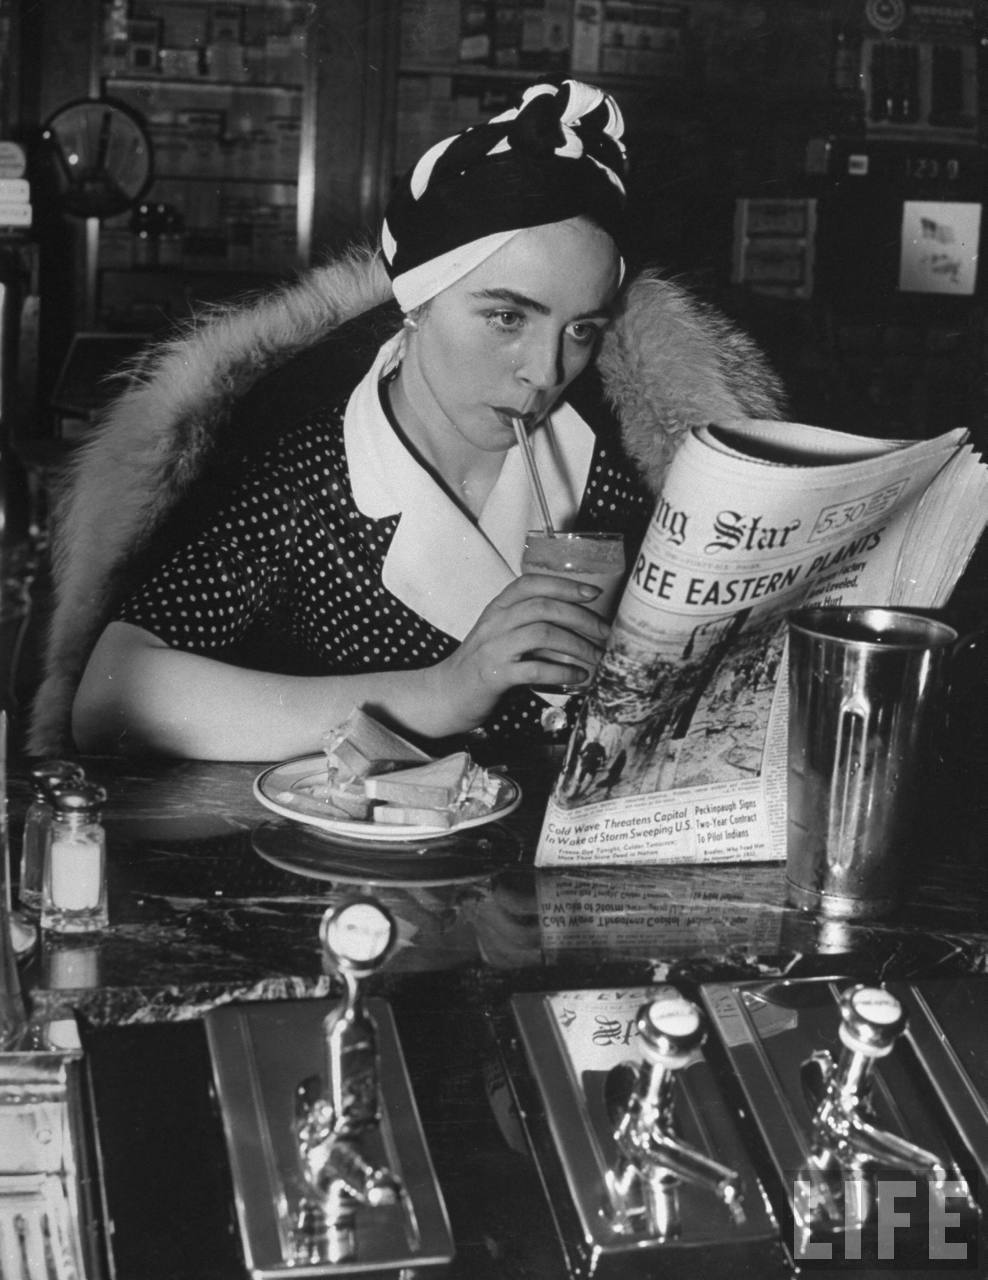 WomanReadingNewspaperDrinkingChocolateShakeWearingTurban1940